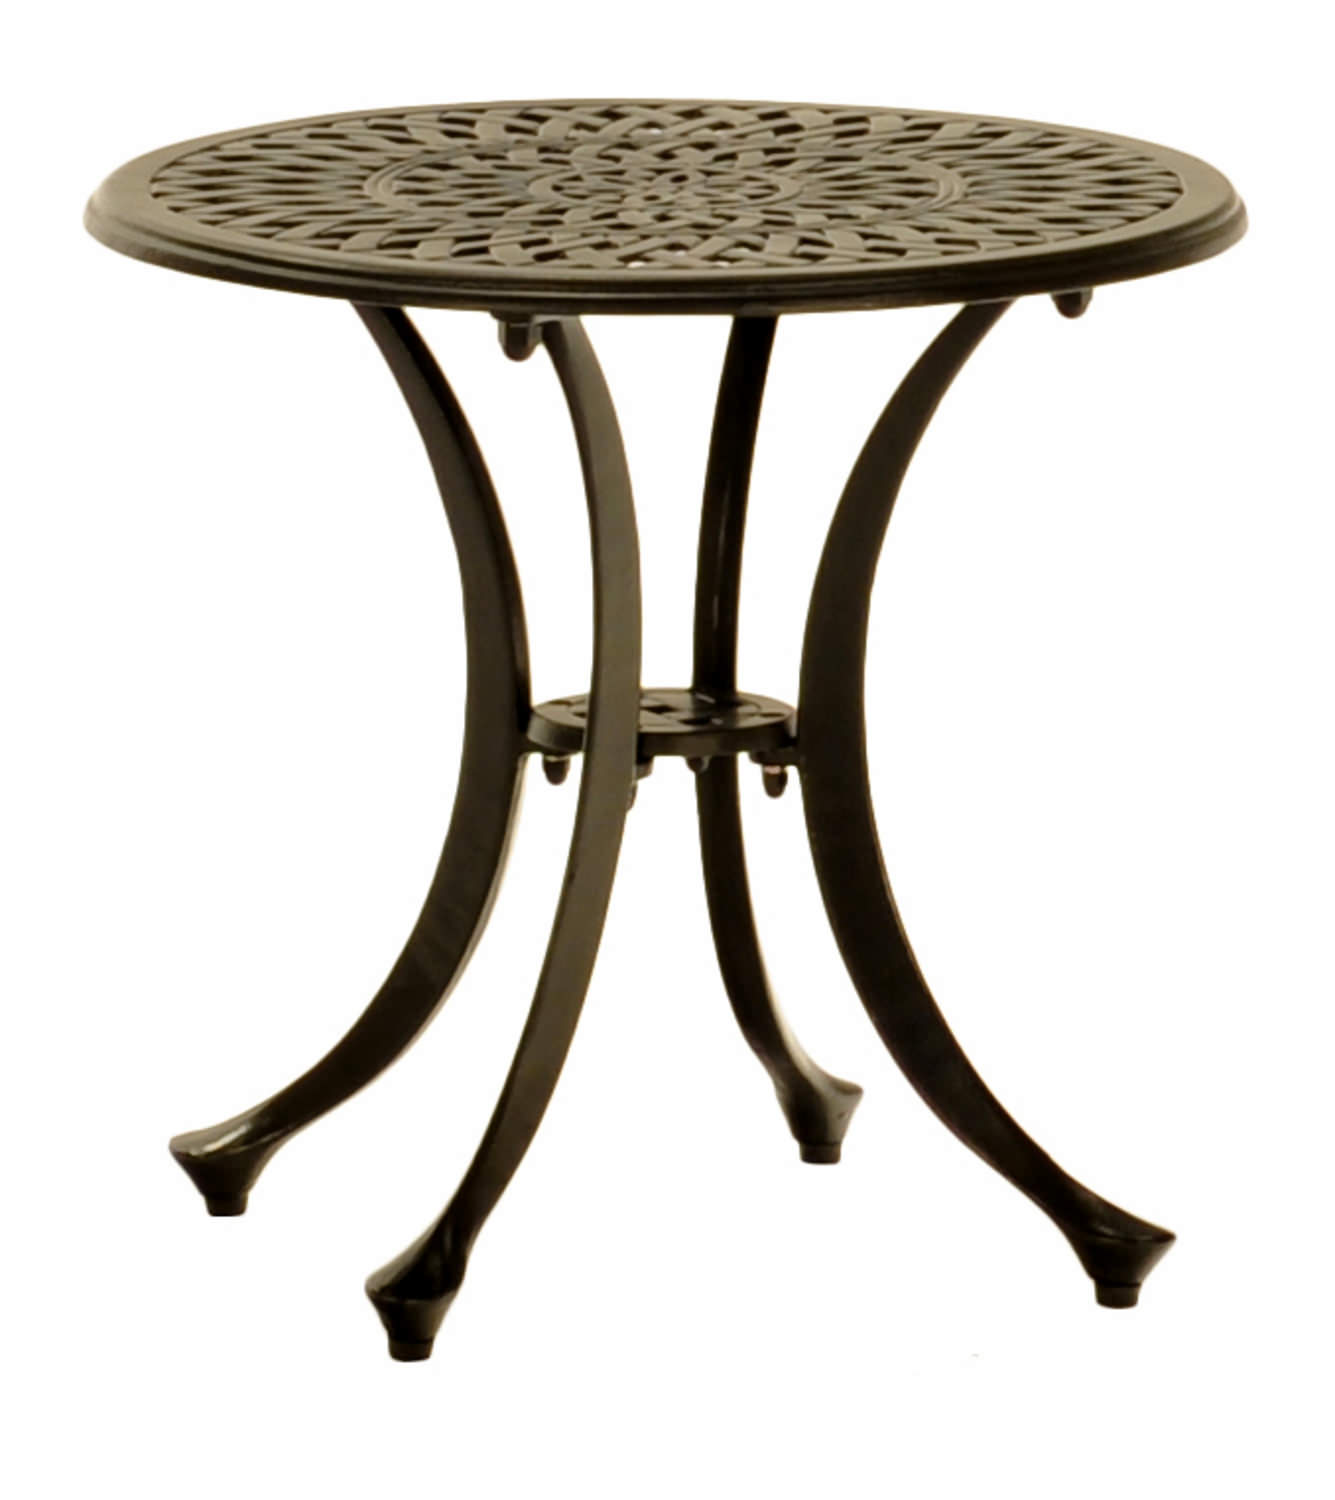 round cast aluminum side table hom furniture outdoor ashley chair and half west elm dining room sets ikea storage drawers bedroom night lamps replacement legs maple nest tables